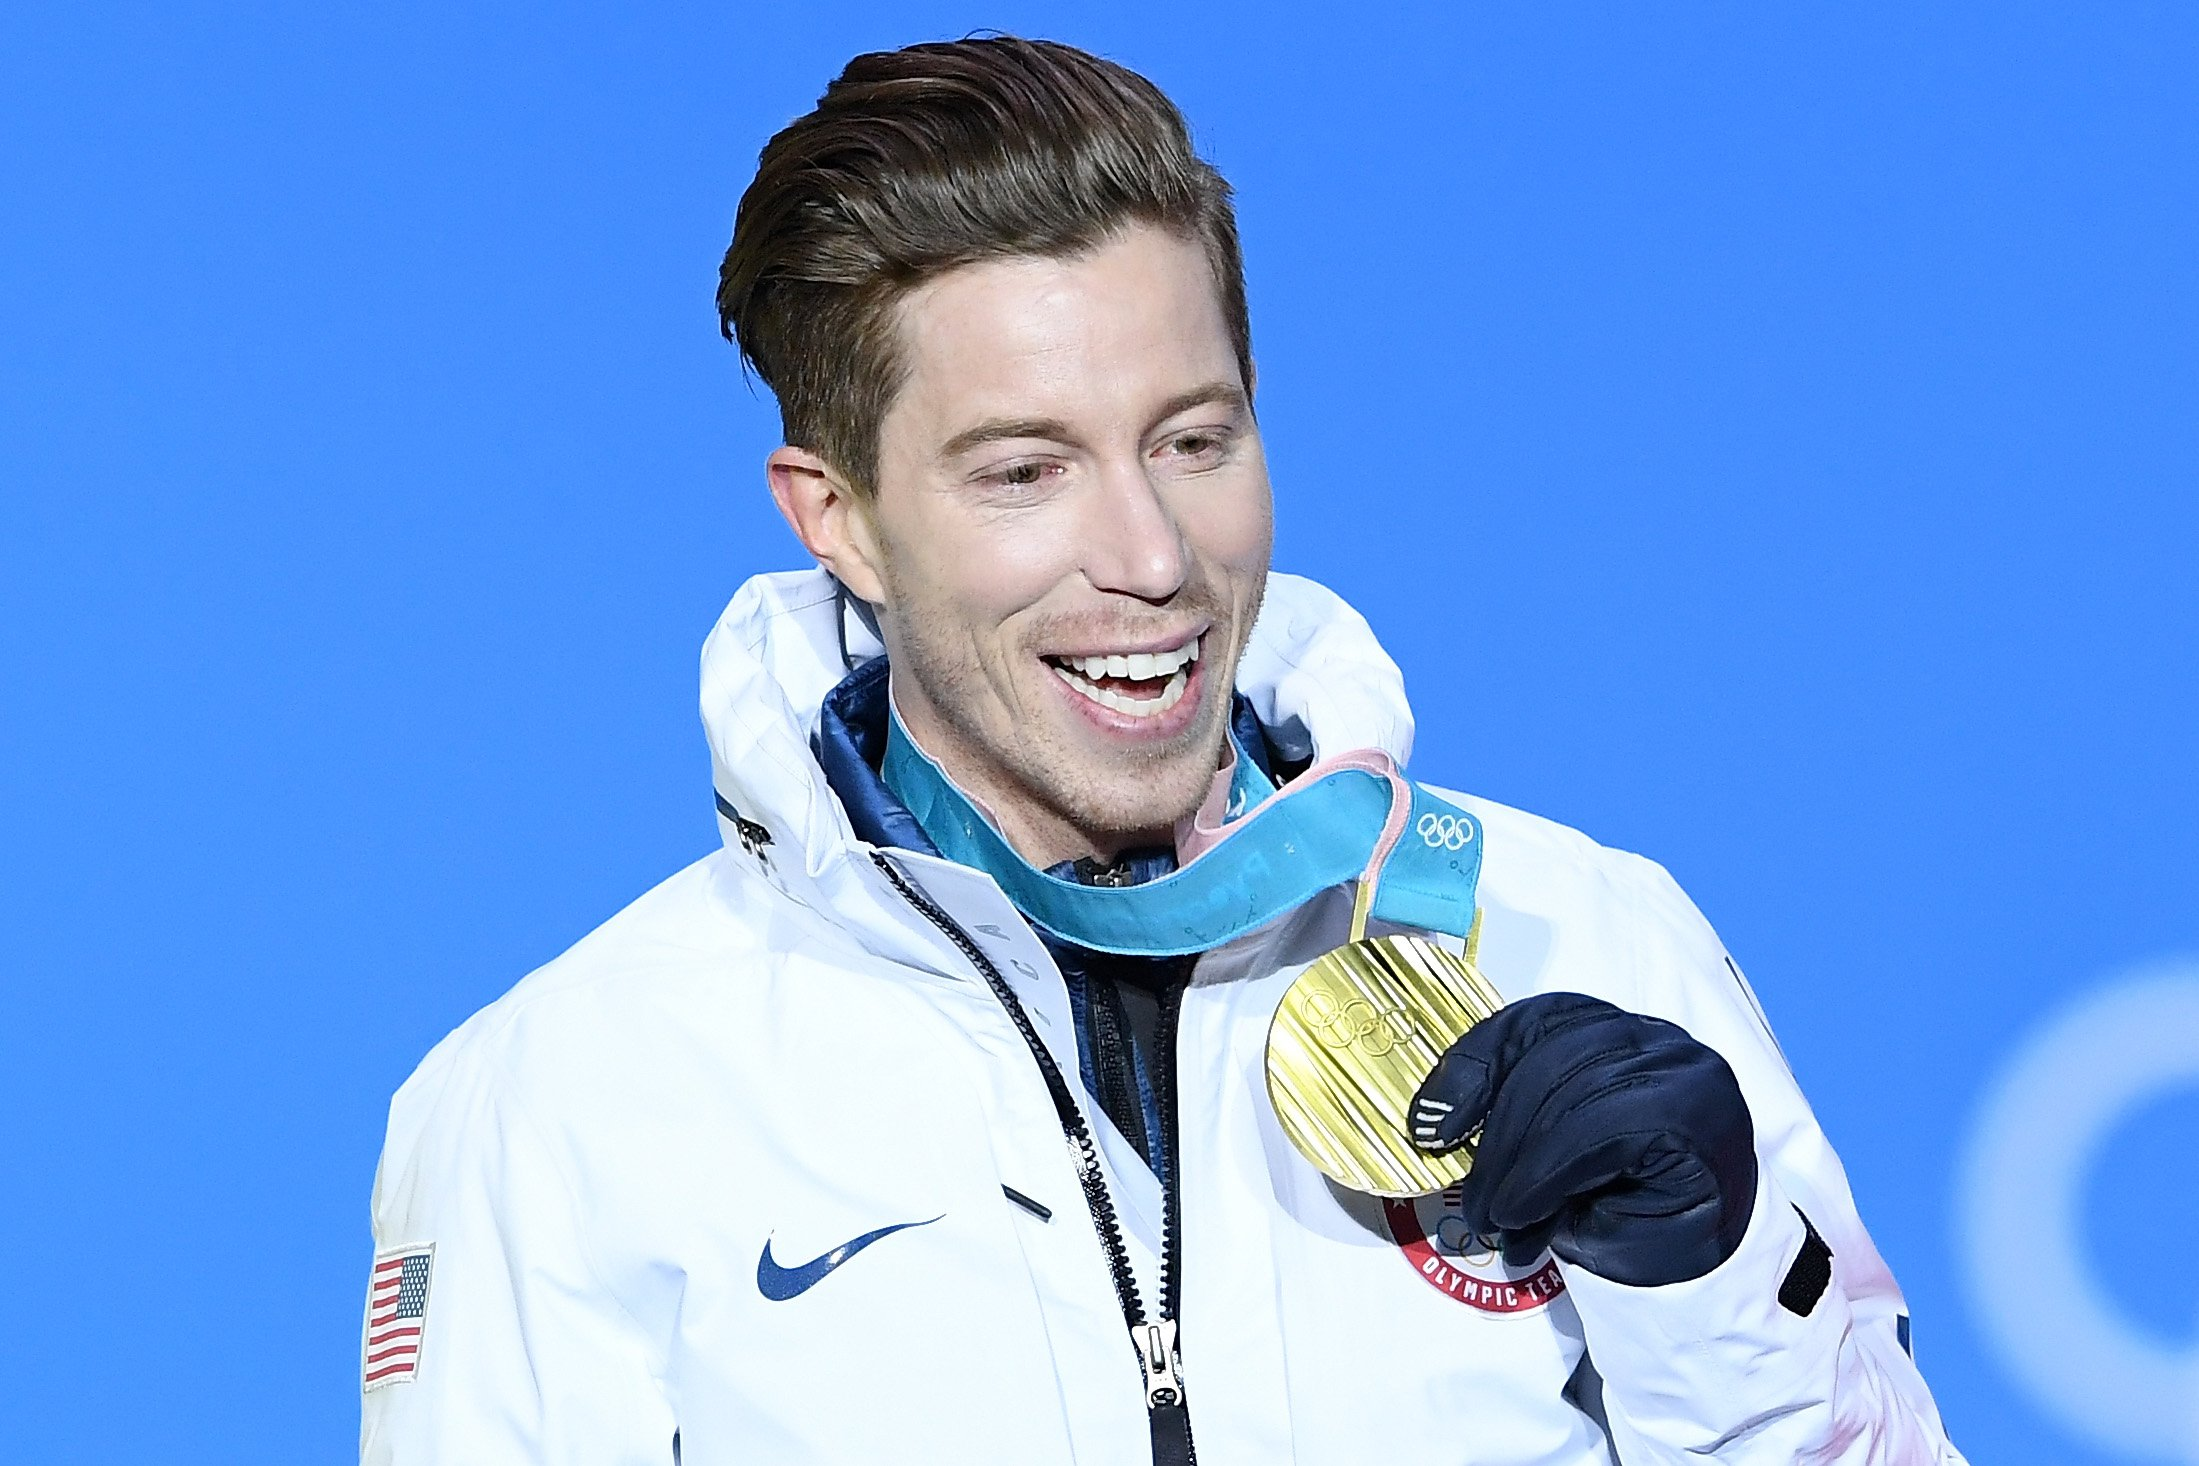 Shaun White wins Gold Medal at the 2018 Winter Olympics